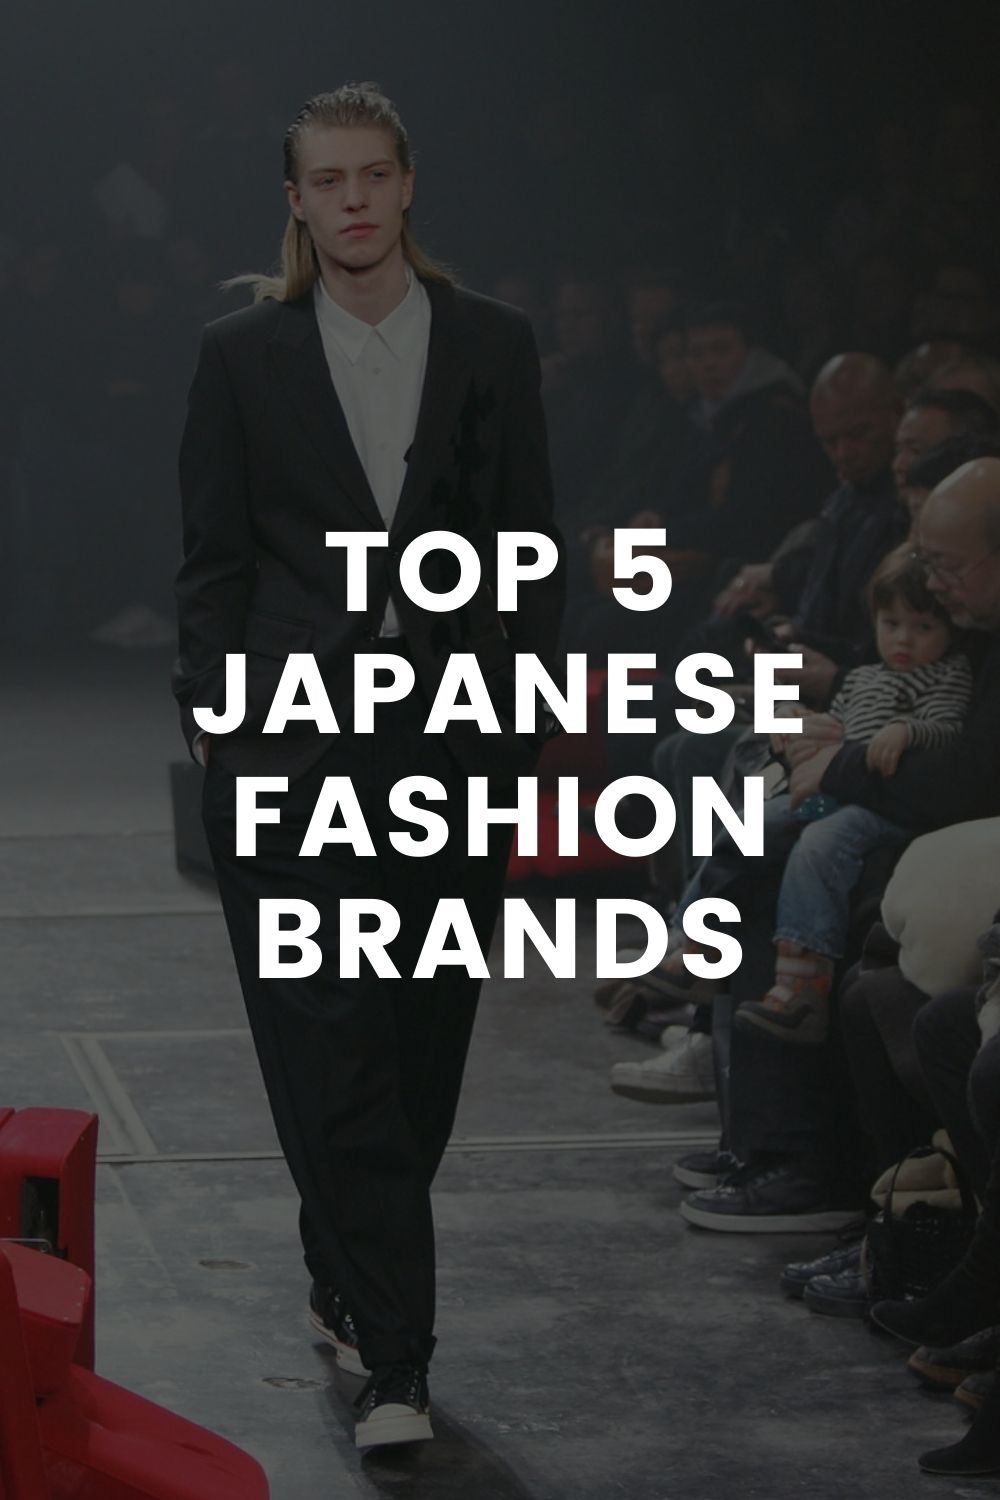 Top 5 Japanese Fashion Brands